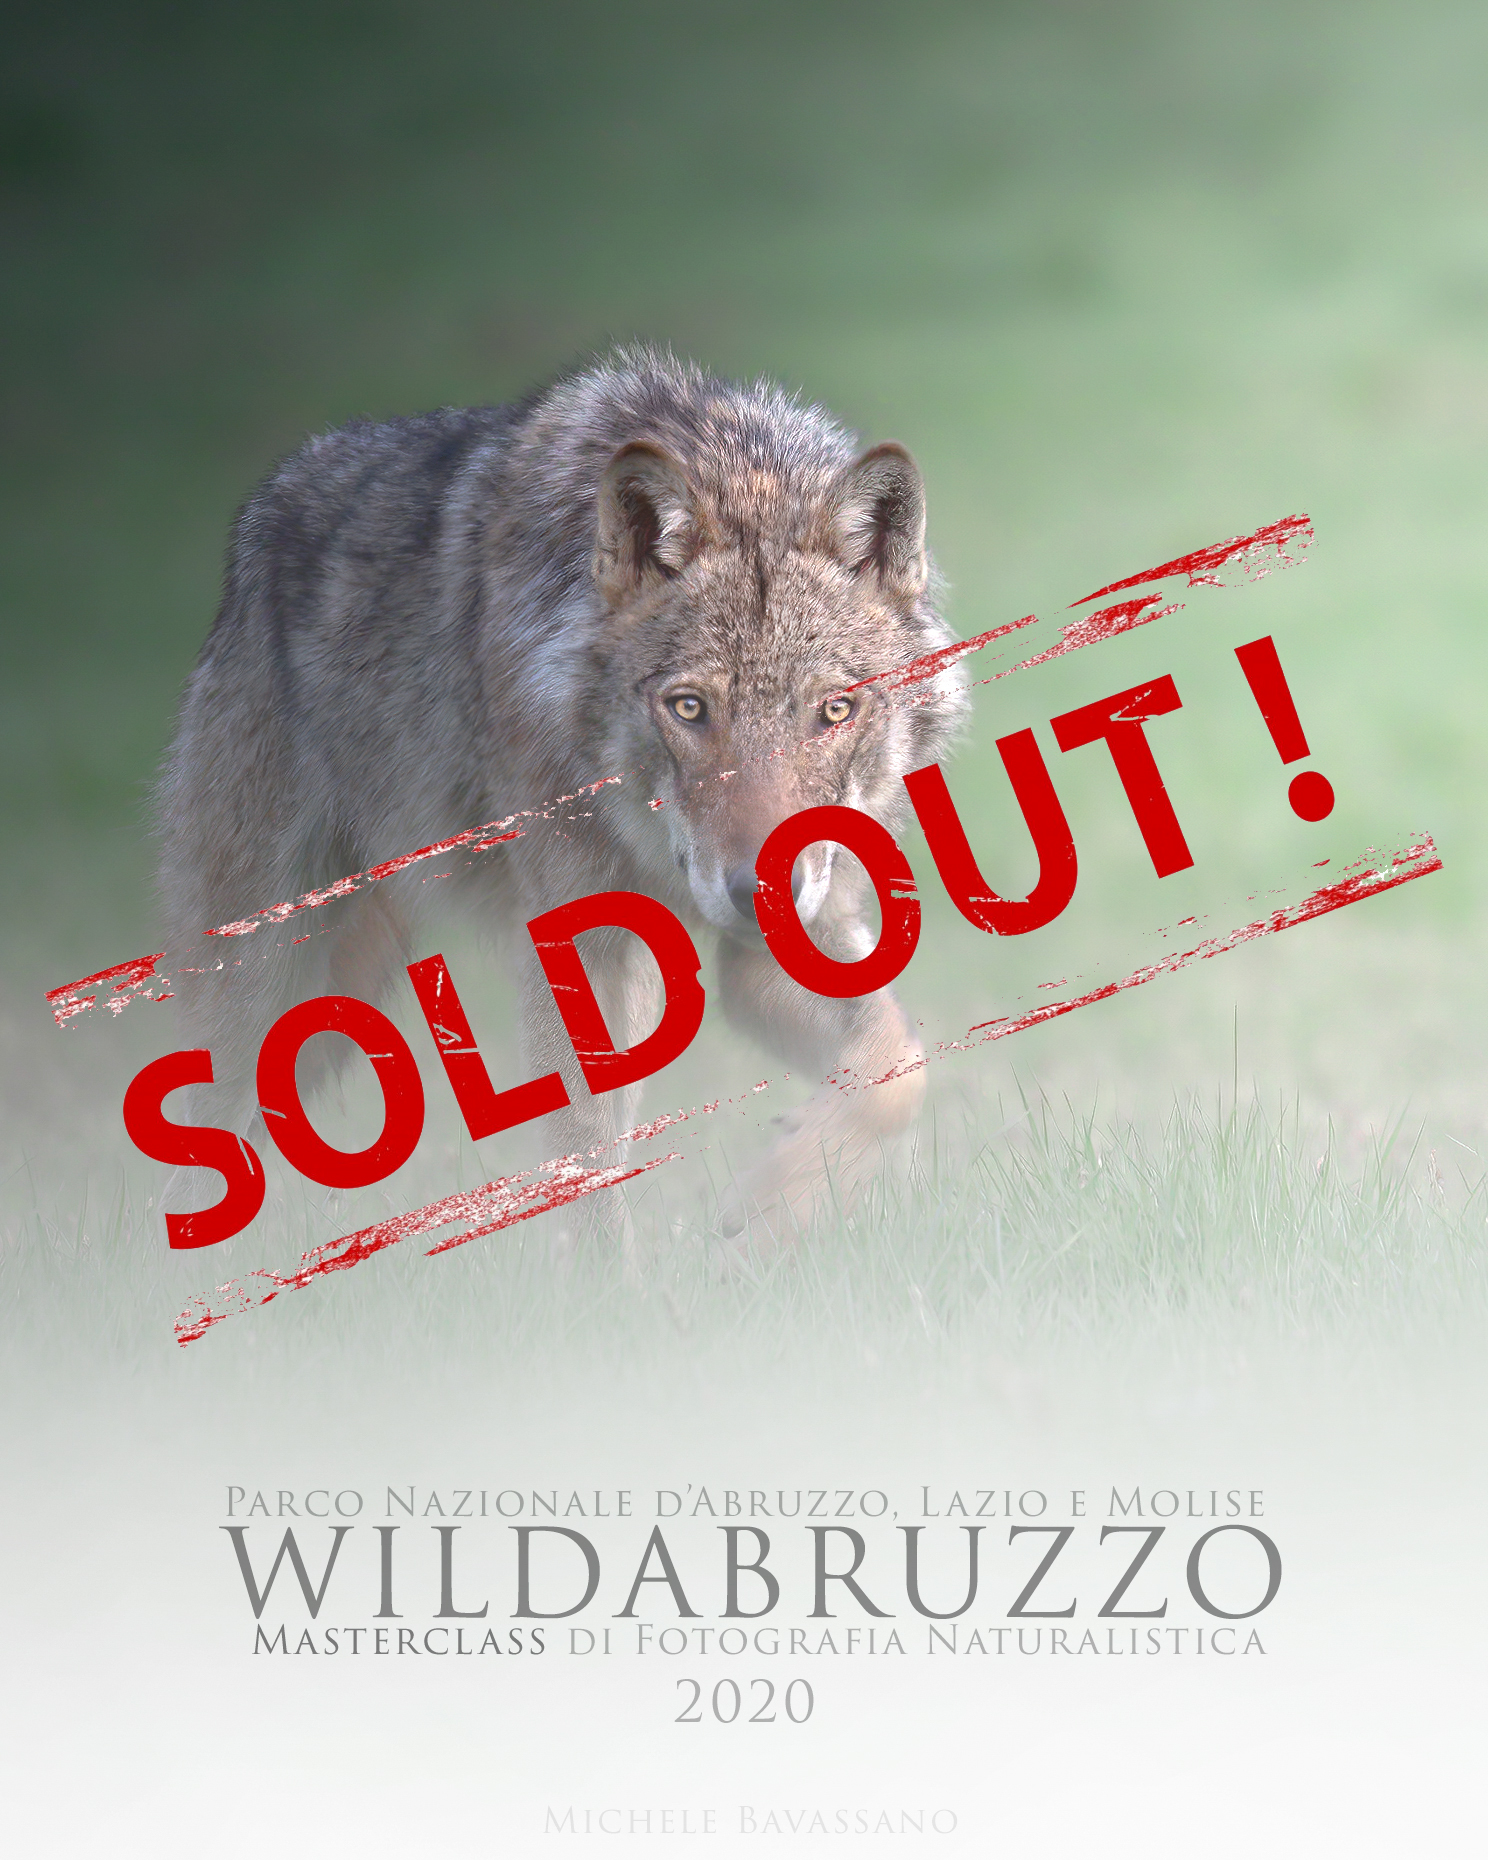 MasterlClass di fotografia naturalistica sold out